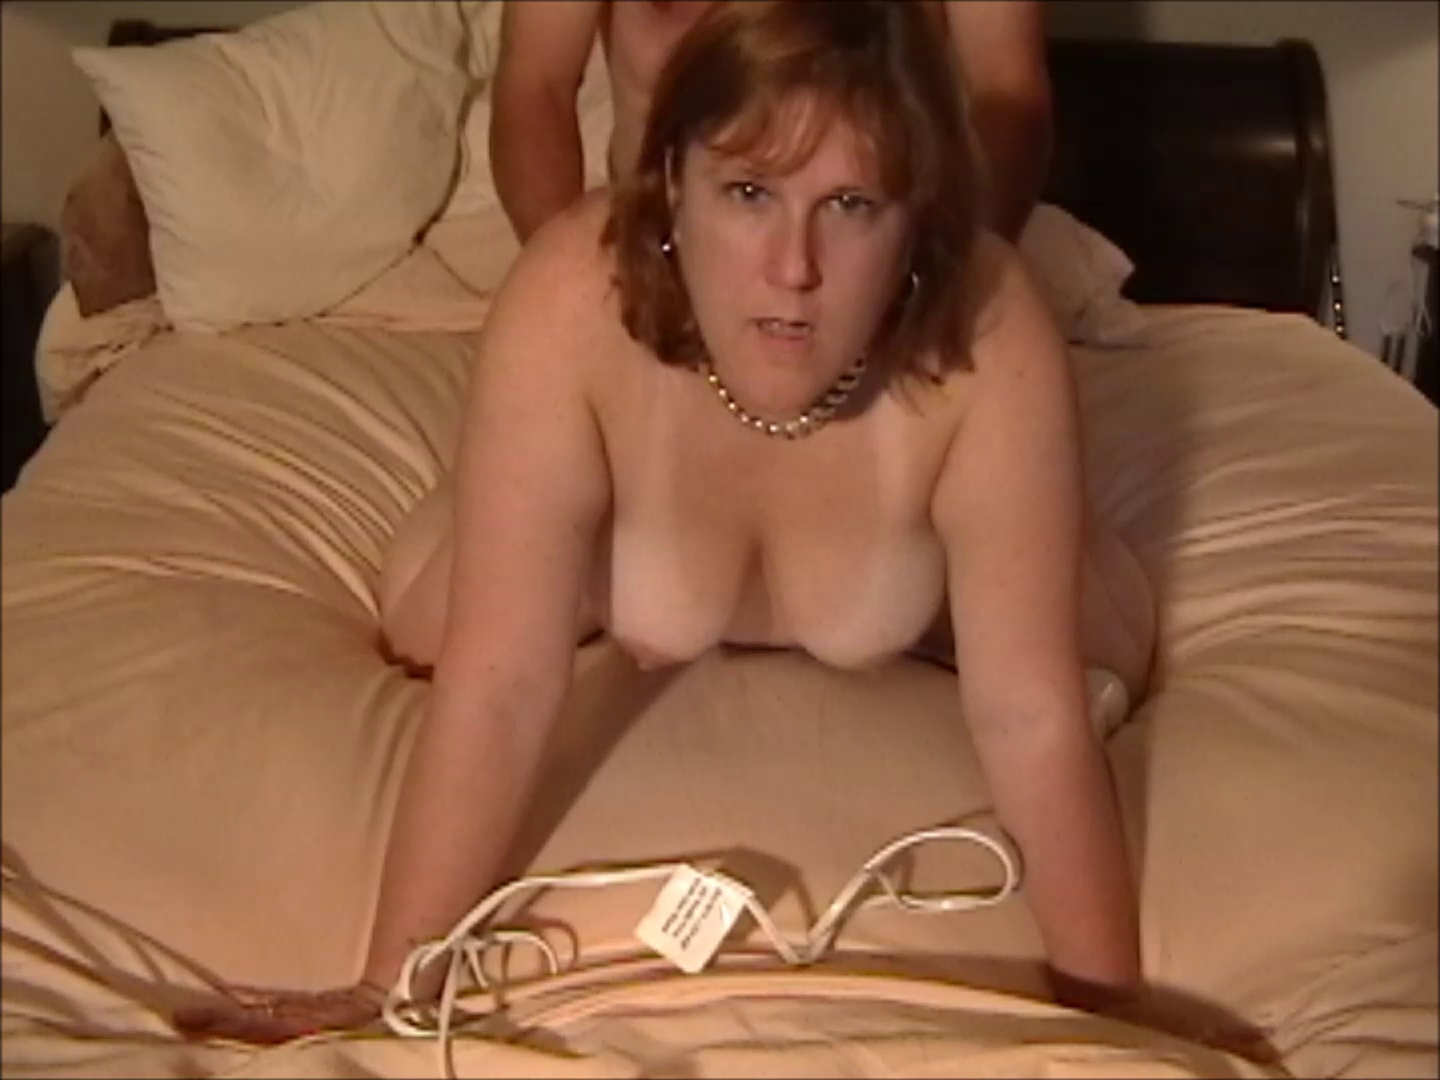 Leanne Arbuckle on all fours Oh how i love you song